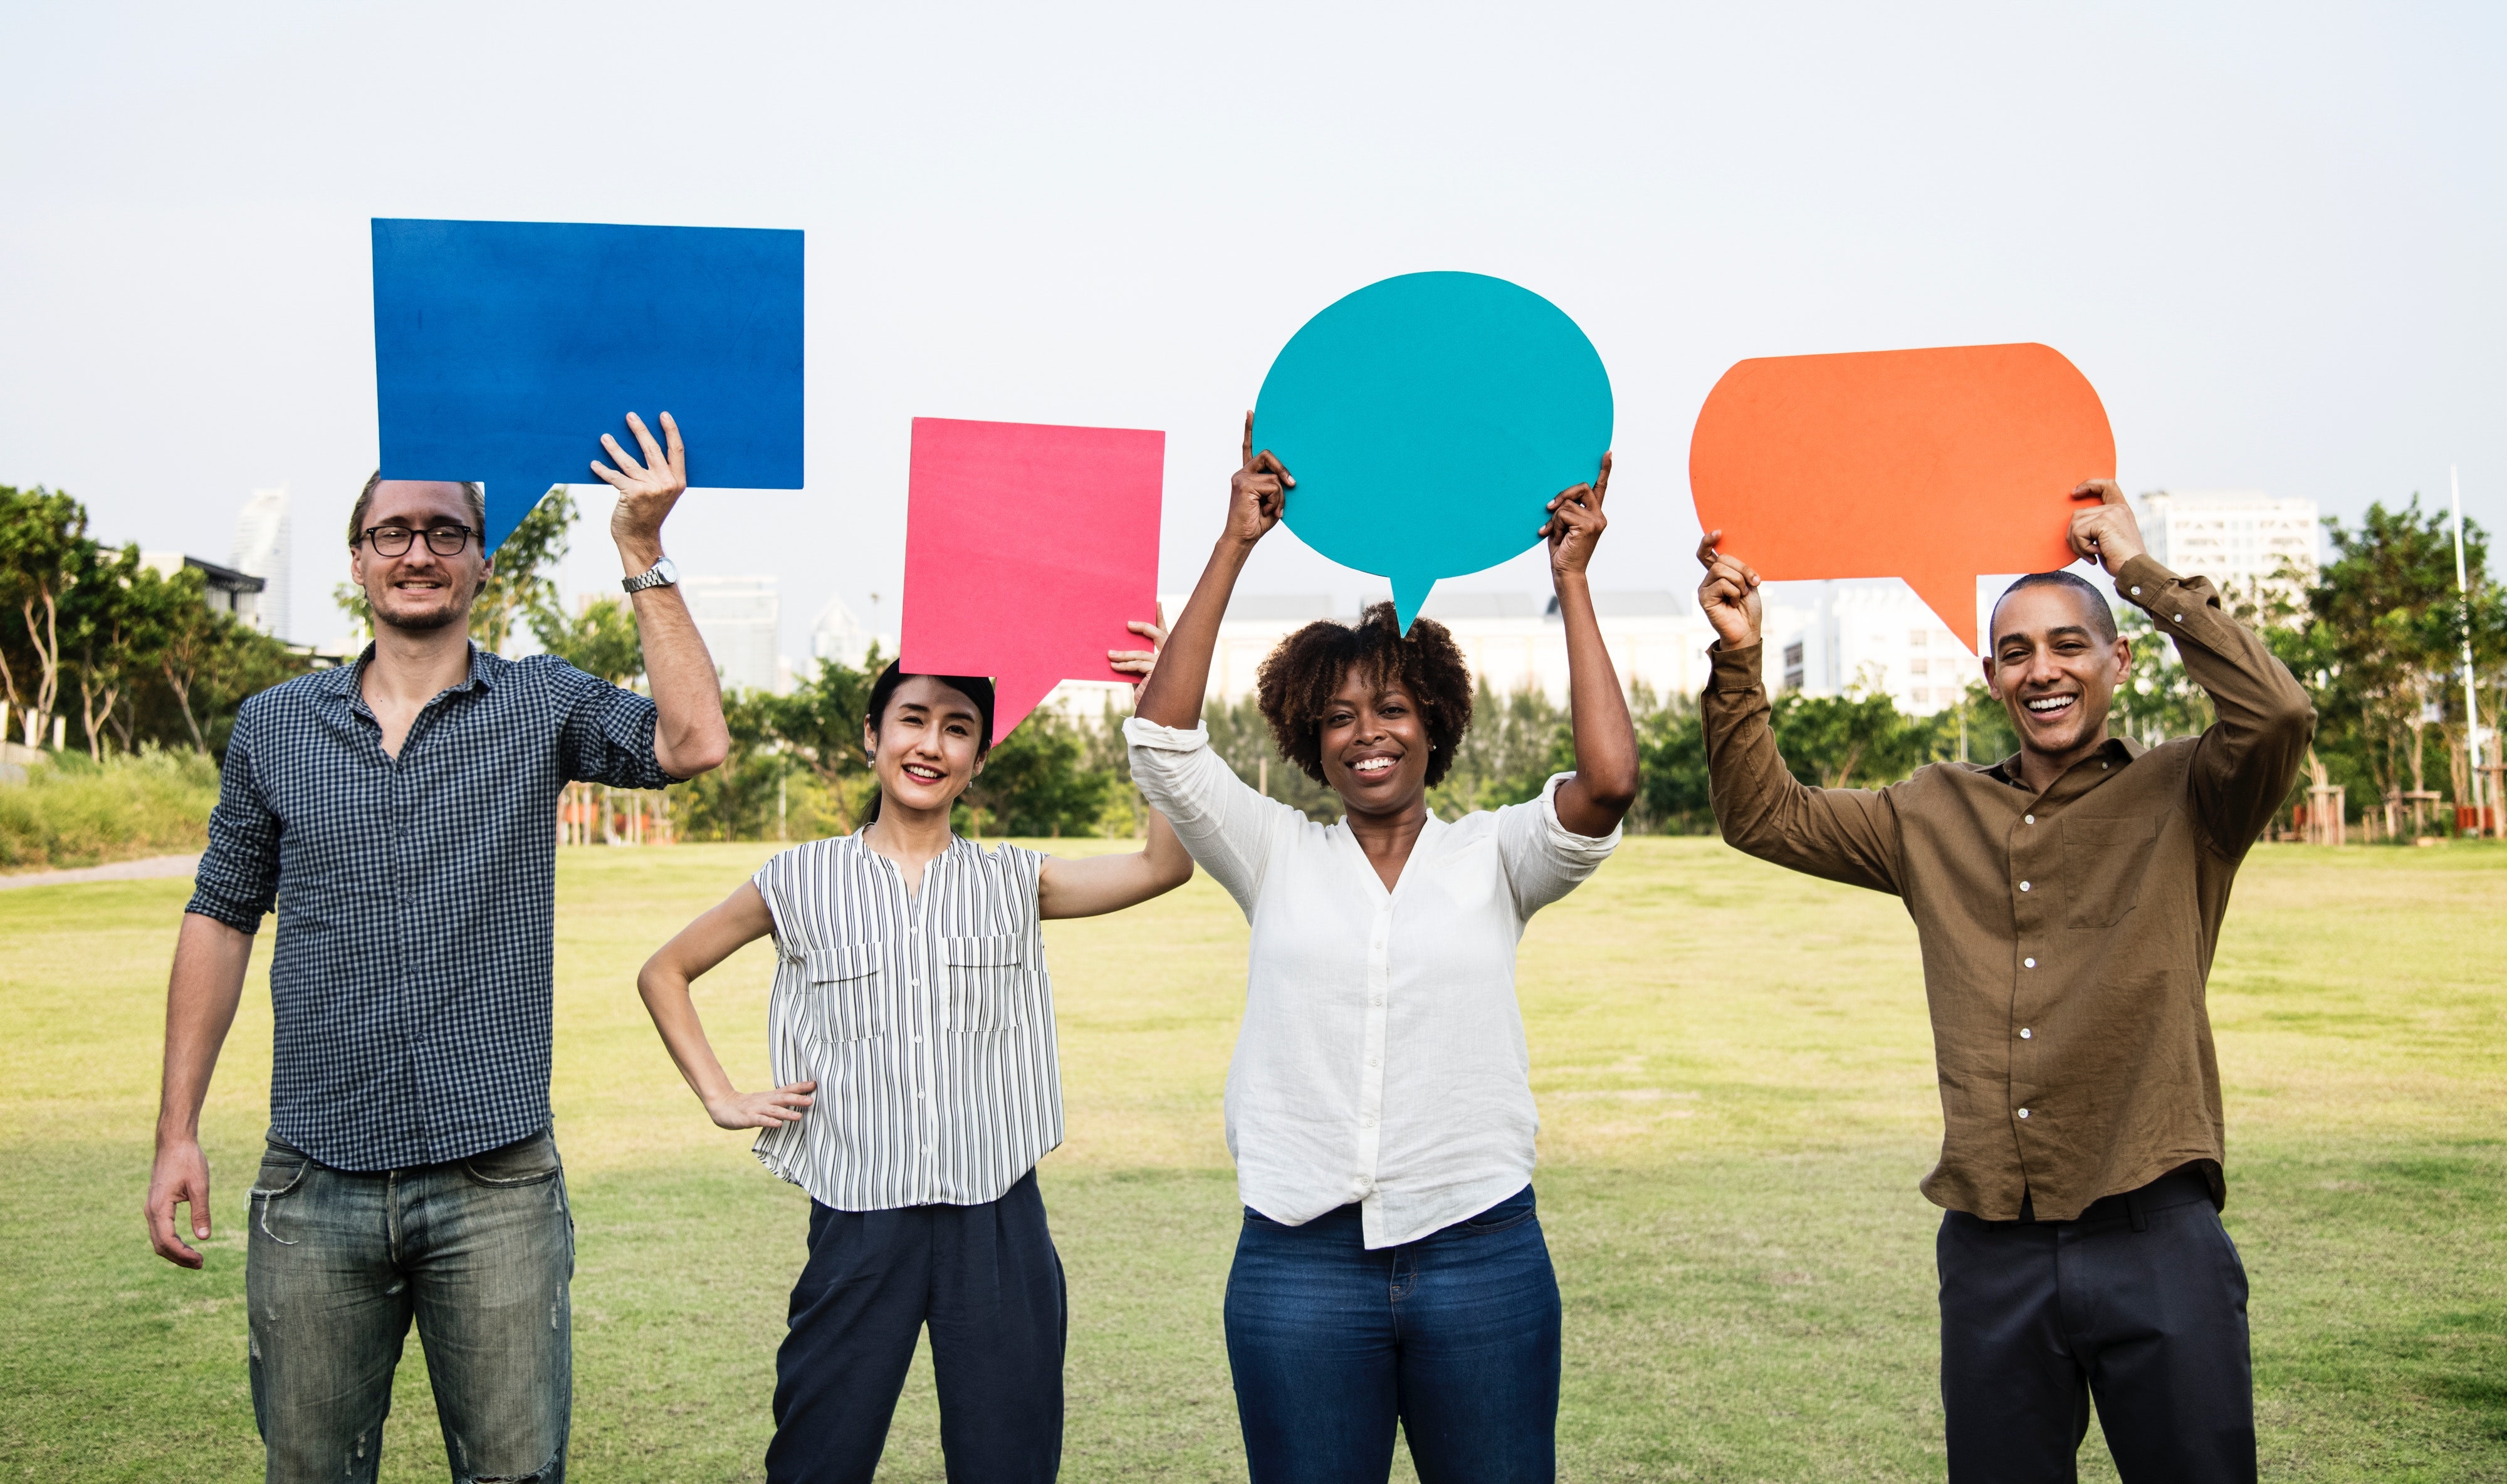 Group of four people holding speech bubbles